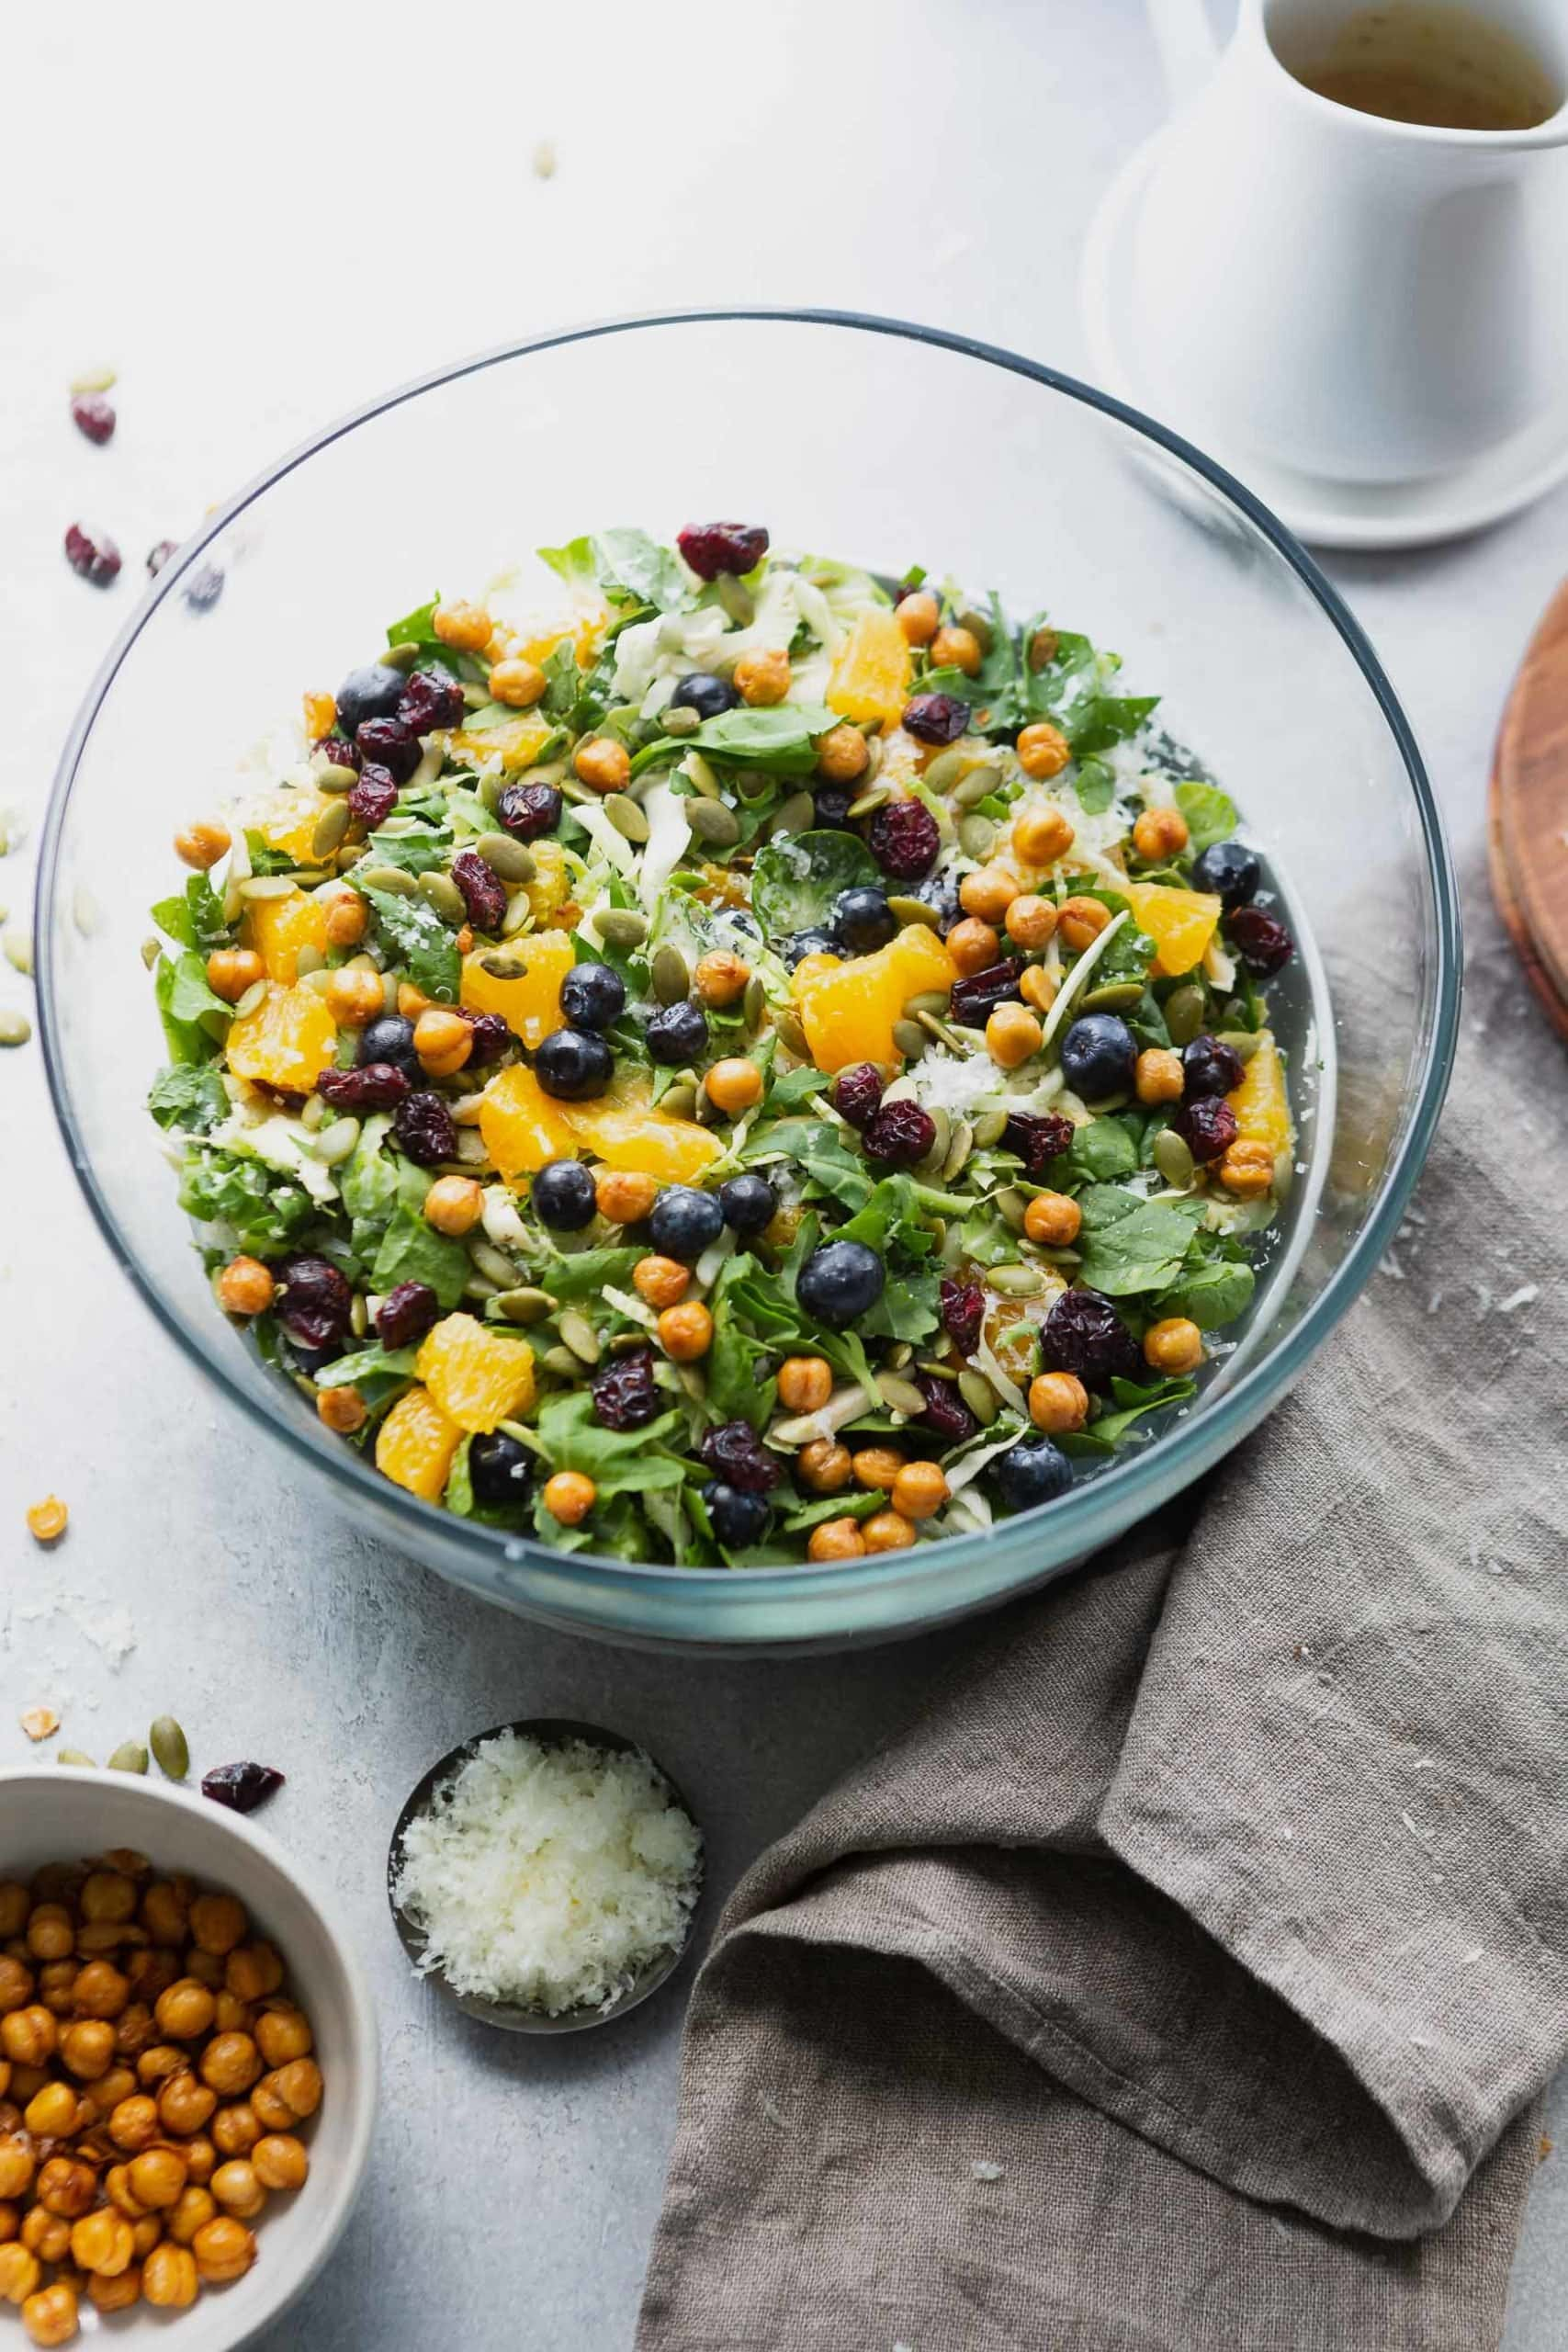 a photo of a large glass bowl full of shredded brussels sprouts salad. you can see whole blueberries, chunks of orange slices, roasted chickpeas, craisins and shredded manchego cheese.